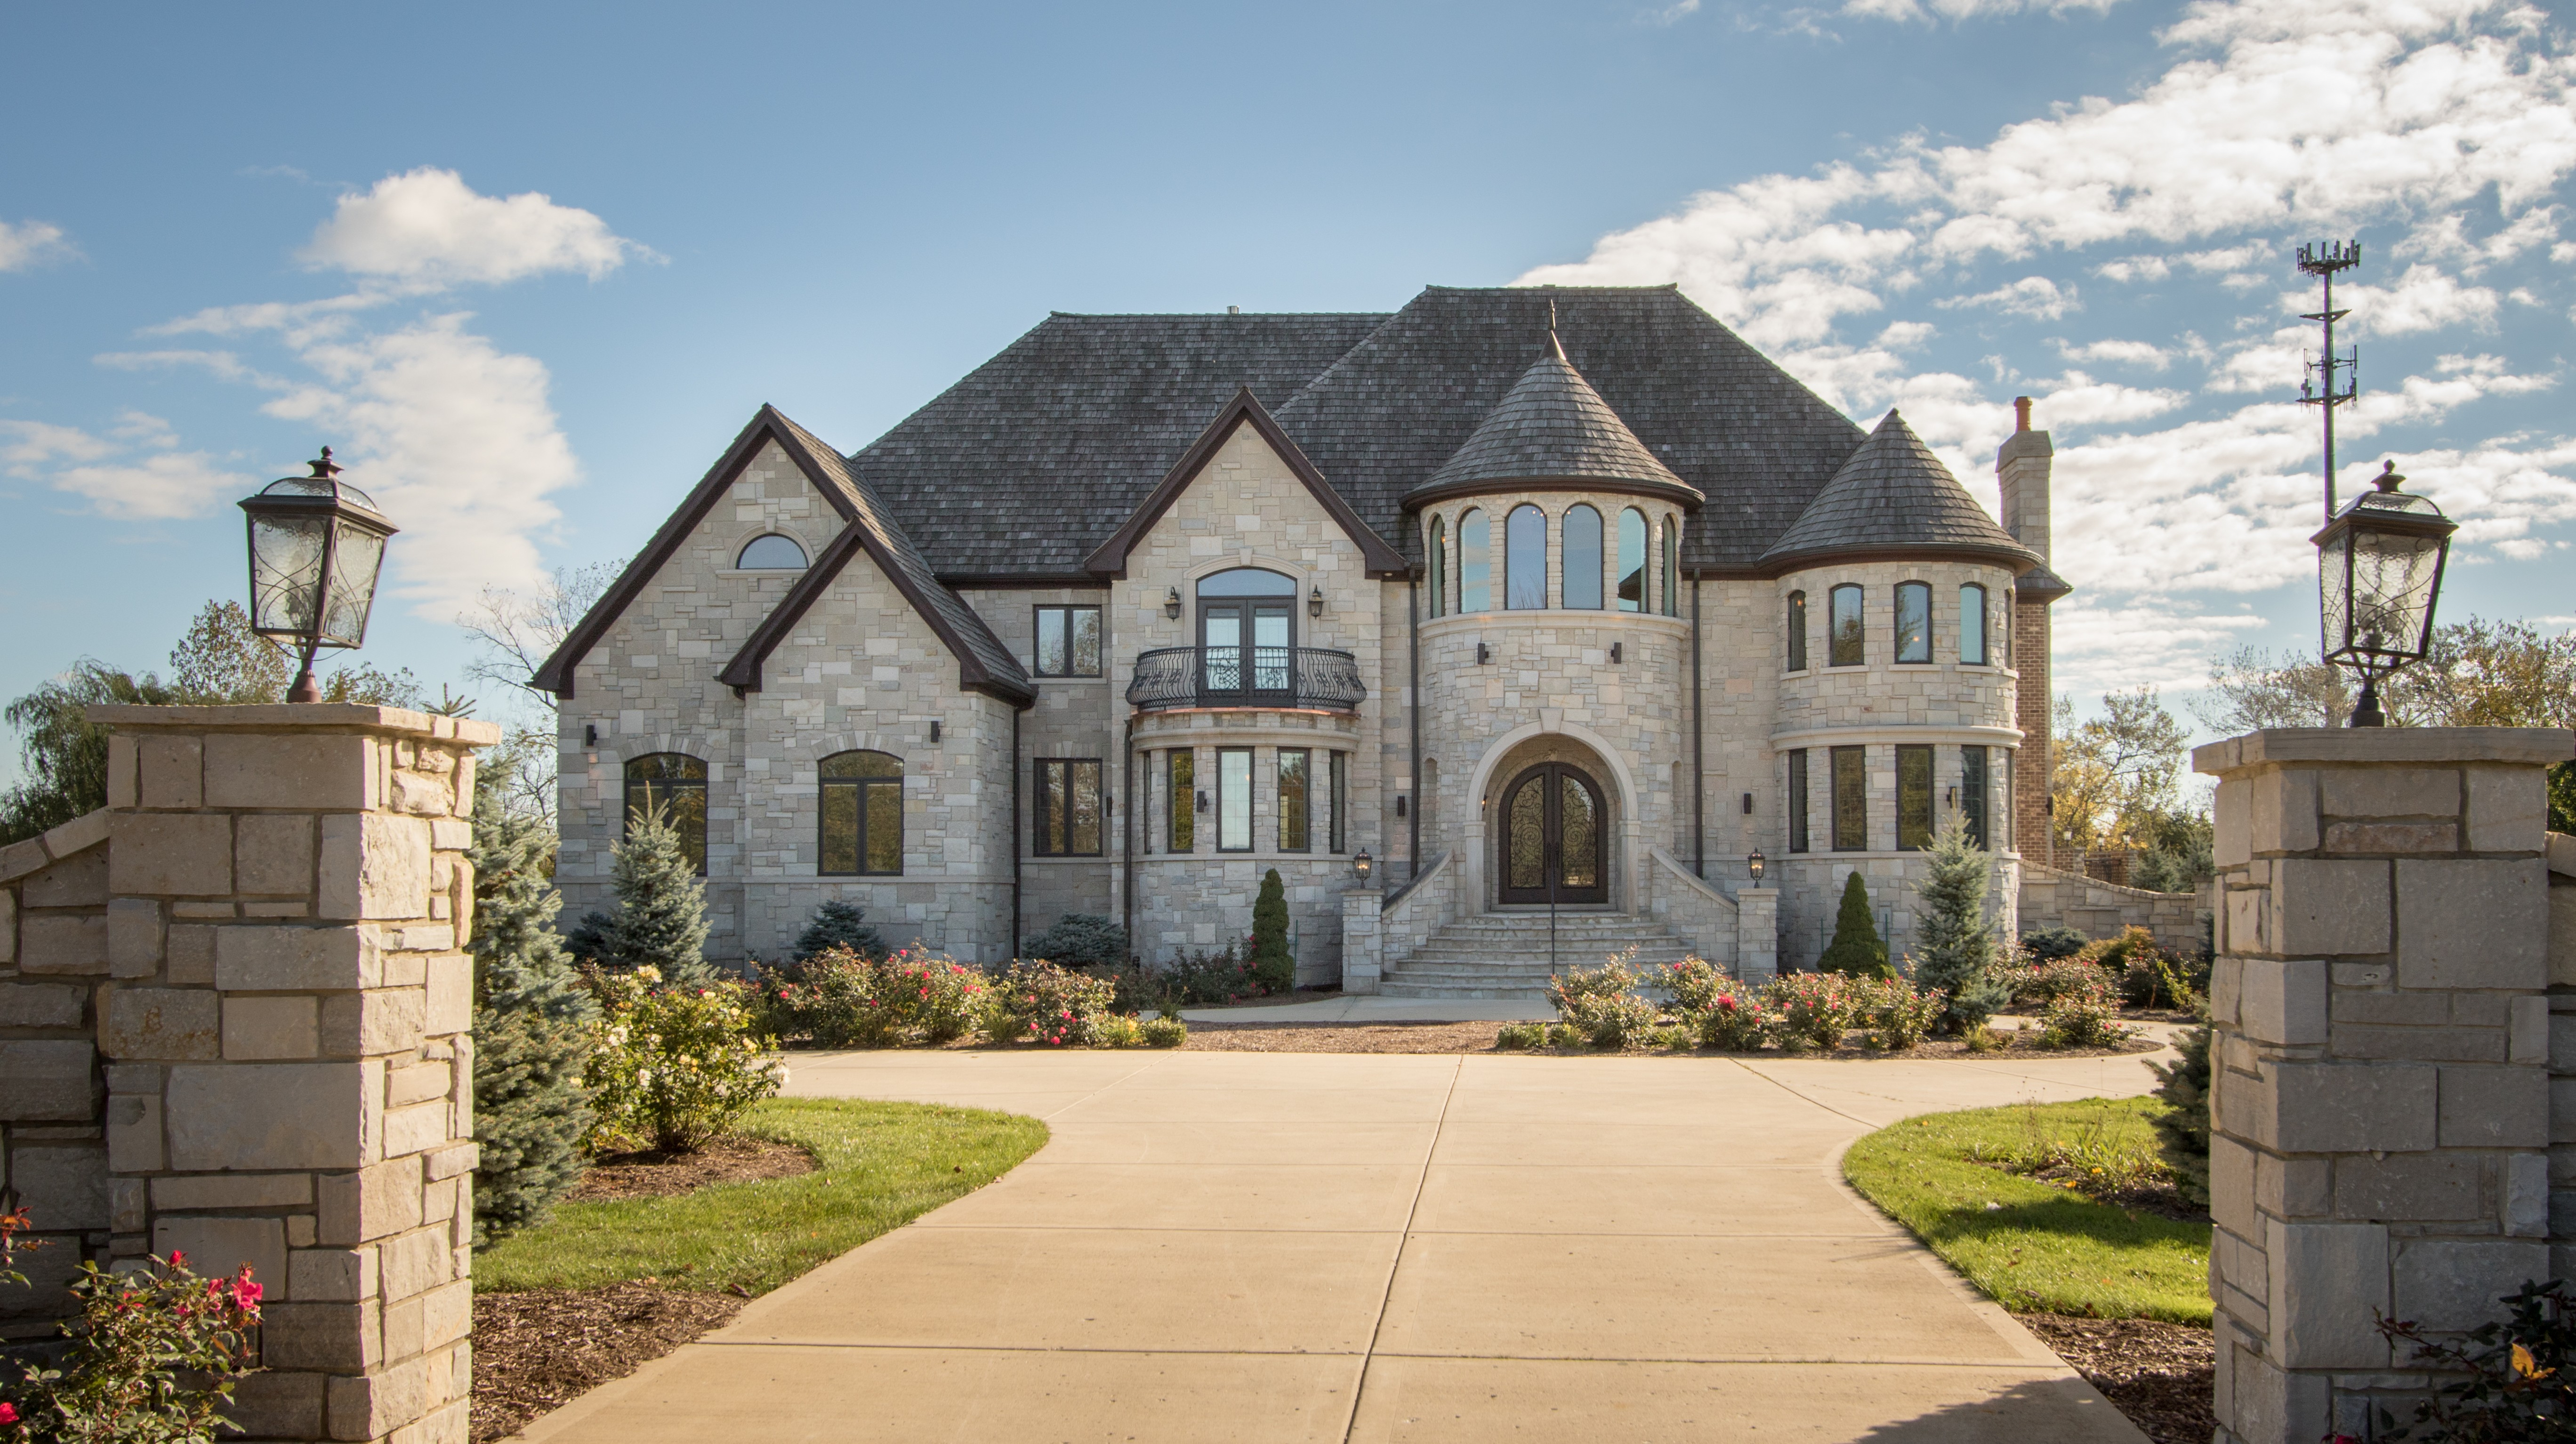 Single Family Home for Sale at Exquisitely Refined 10 Creekside Lane Barrington Hills, Illinois 60010 United States